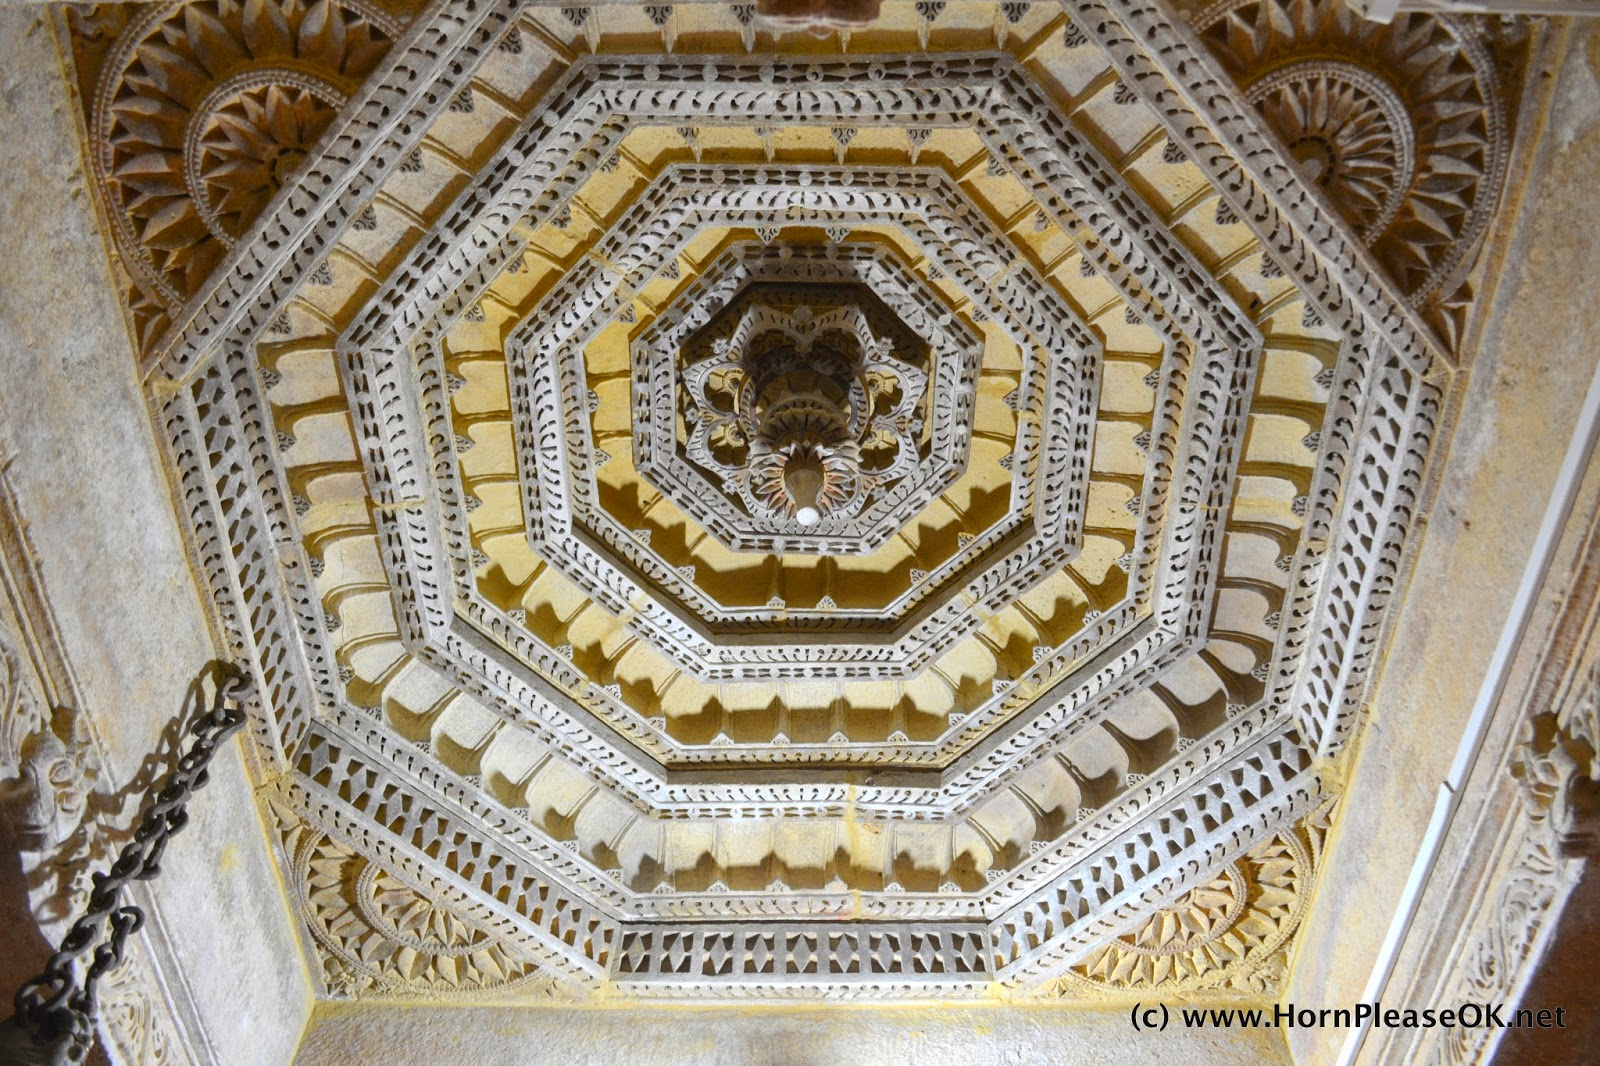 Decorated ceilings of Jain Temples within Jaisalmer Fort